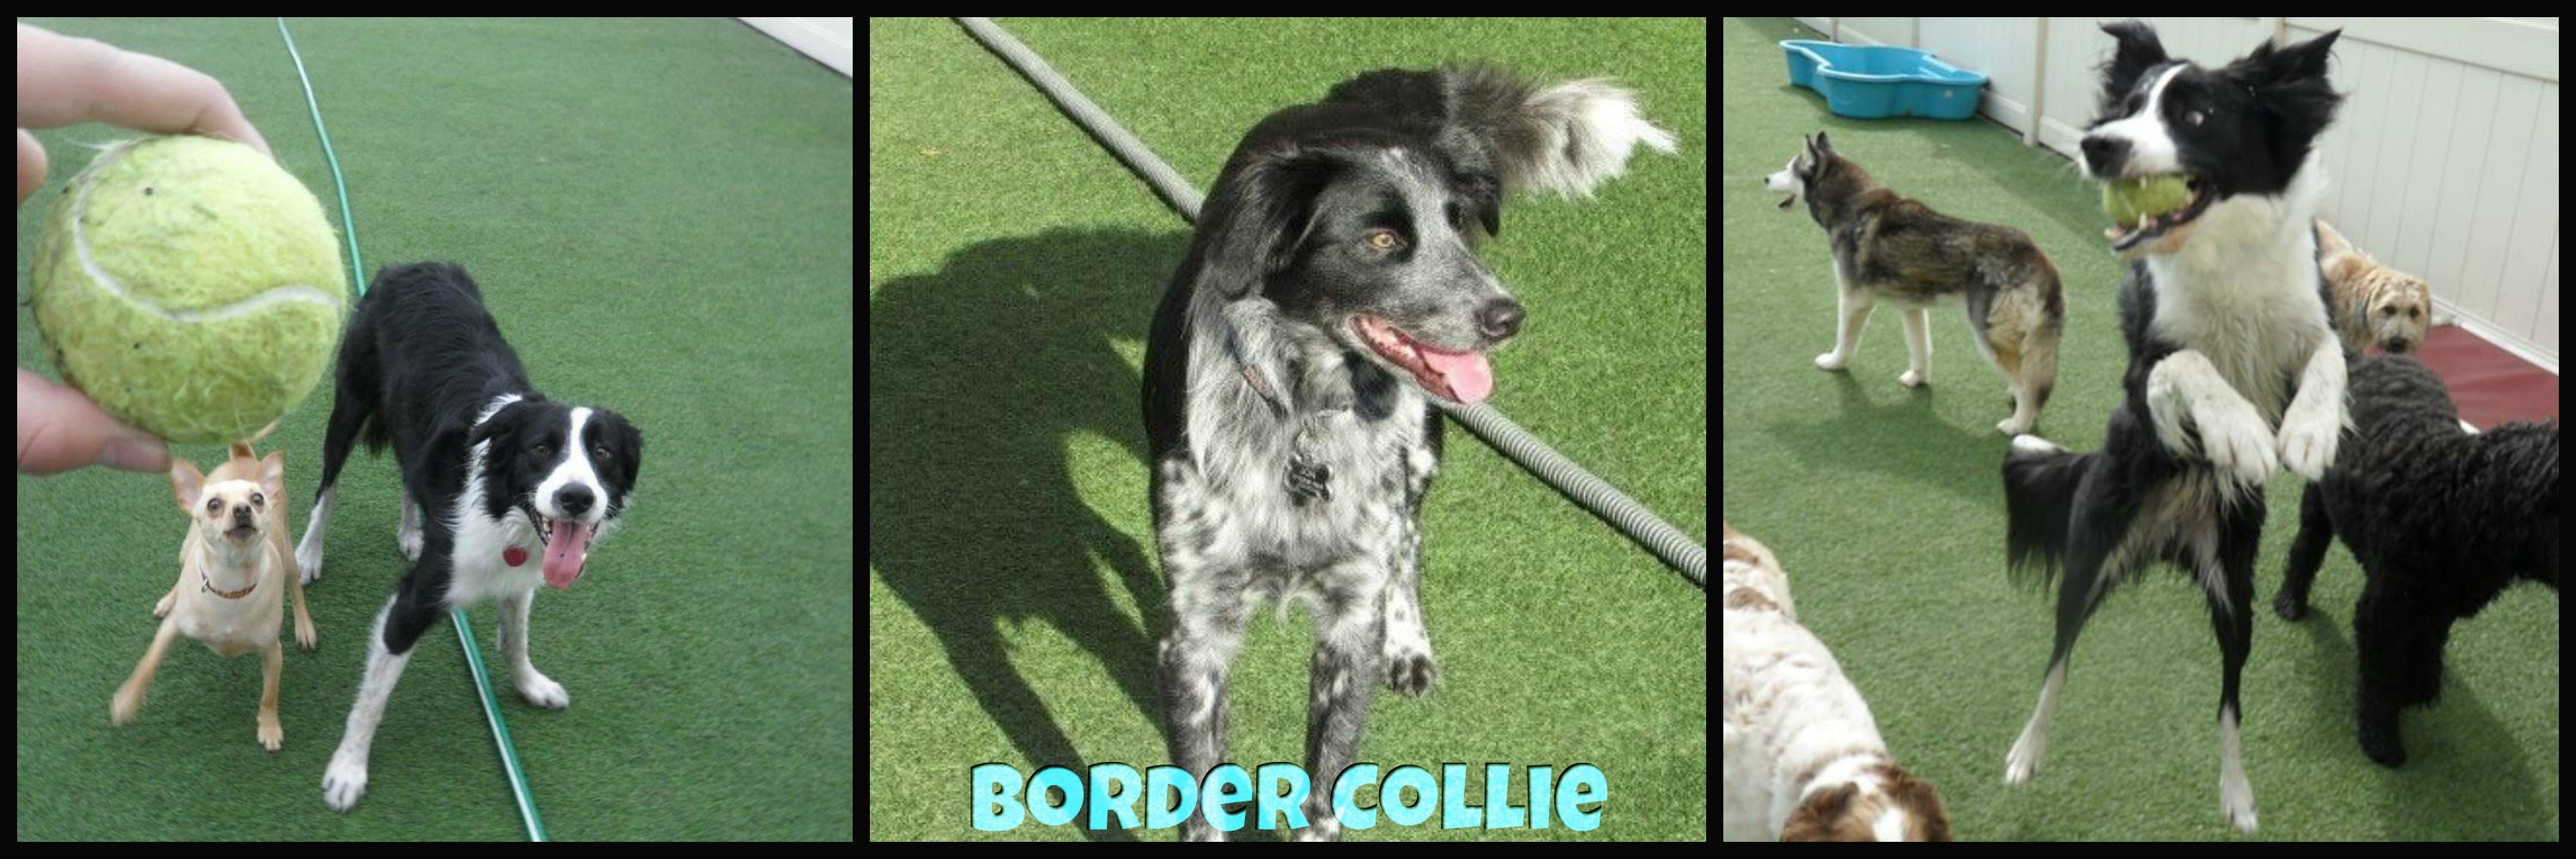 border collies fetchers play and stay